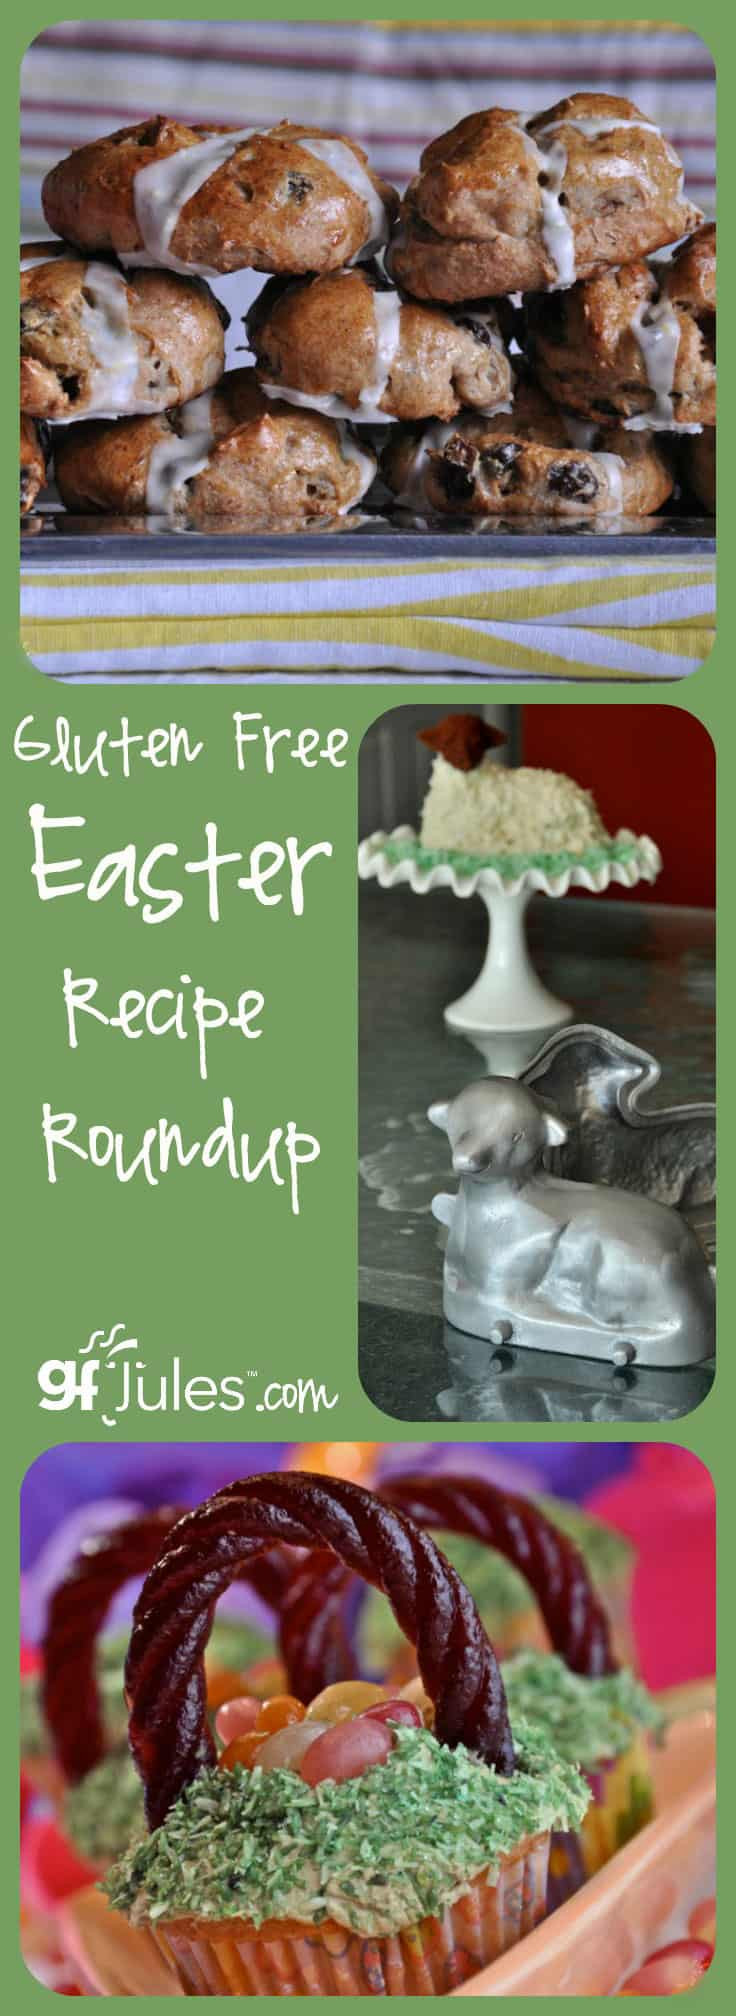 Gluten Free Easter Recipes  Gluten Free Easter Recipe Round Up gfJules makes